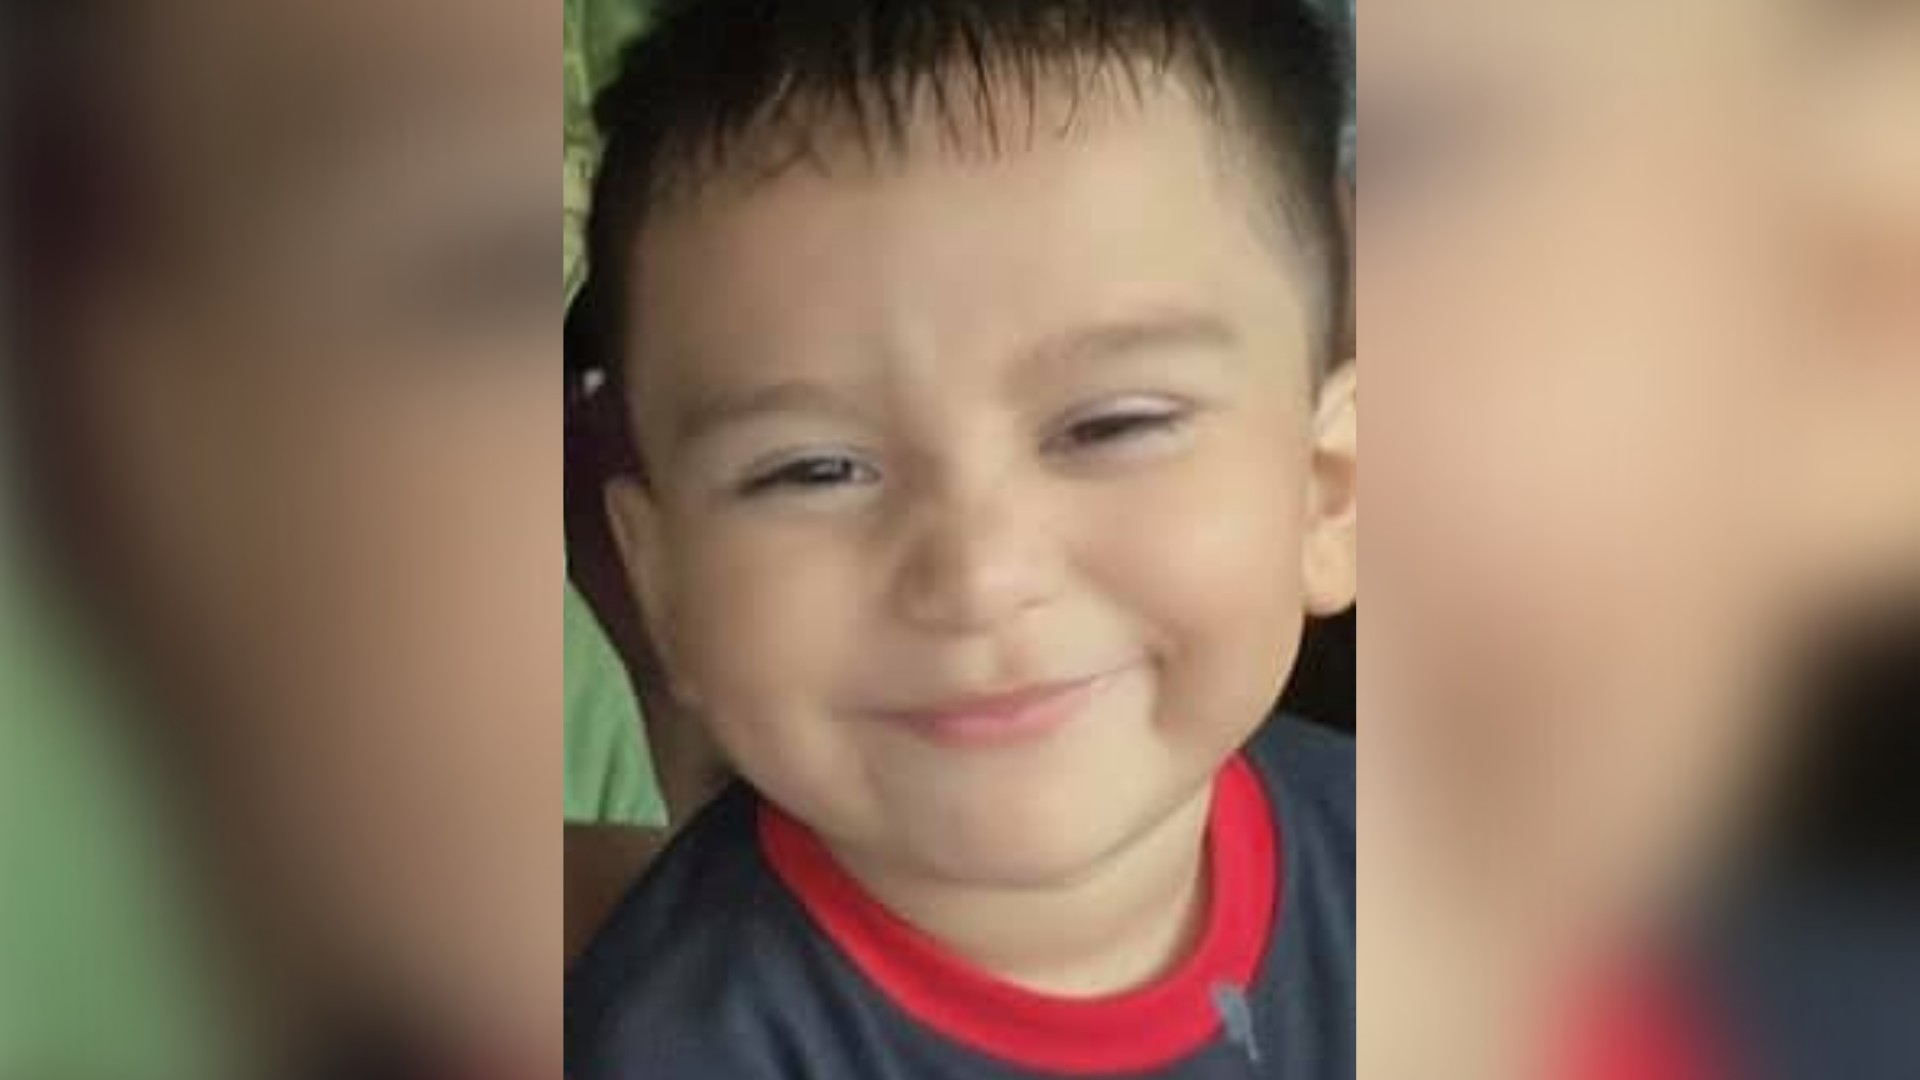 'God's still in the miracle business': Good Samaritan details how he found missing 3-year-old Christopher Ramirez